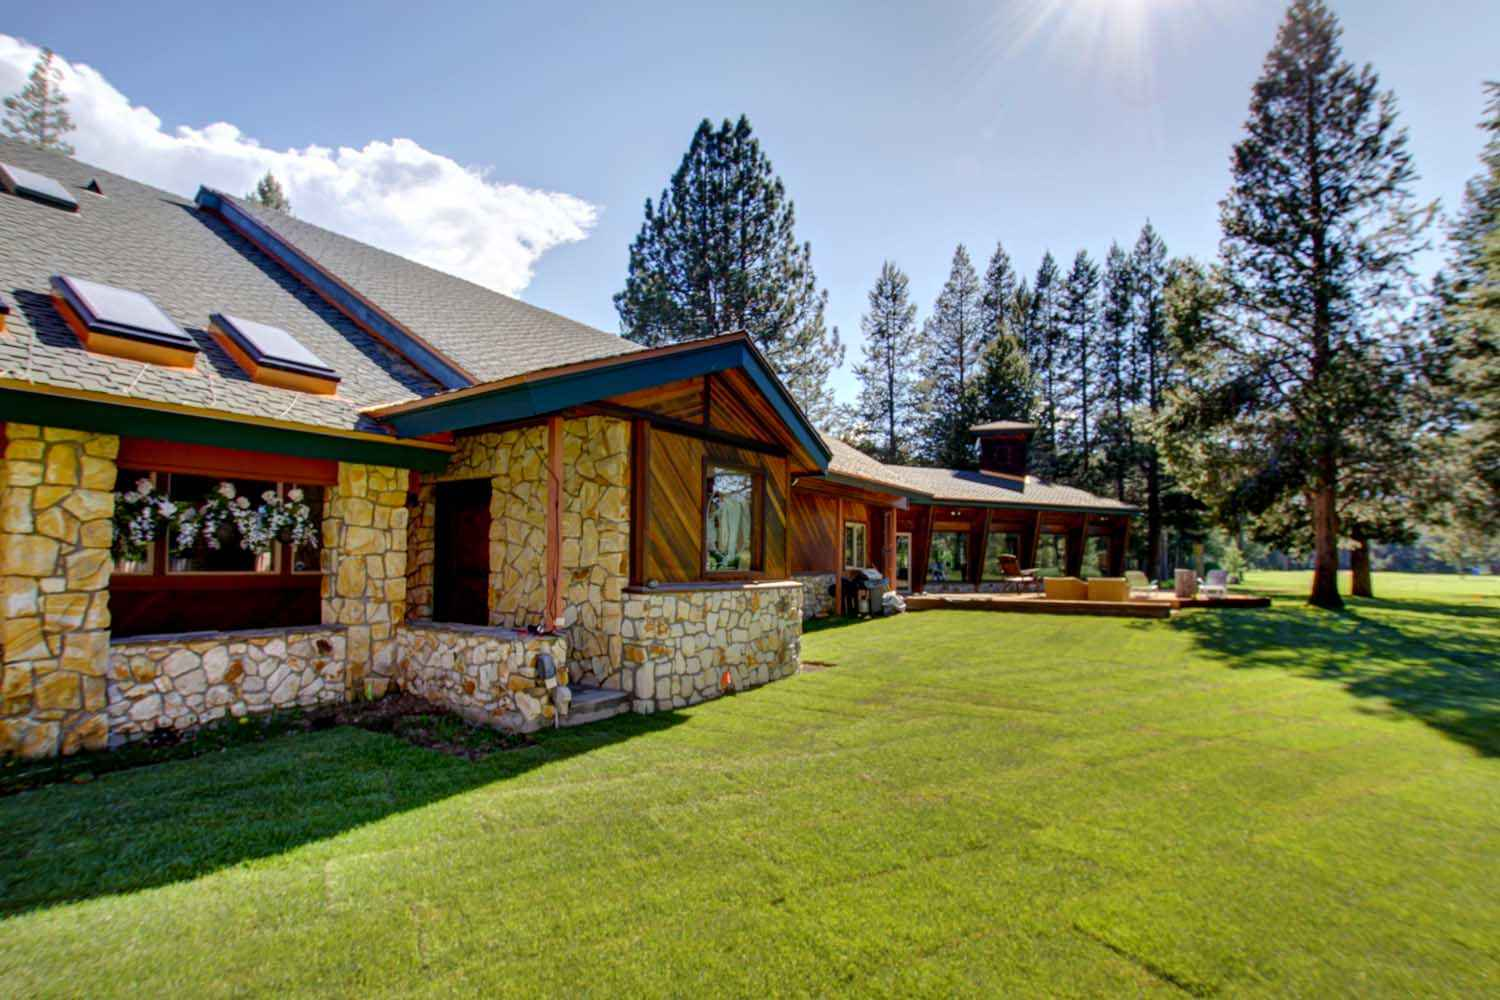 7 bedroom house. 7 Bedroom on Golf Course w Indoor Pool Vacation Rental Tahoe South Rentals